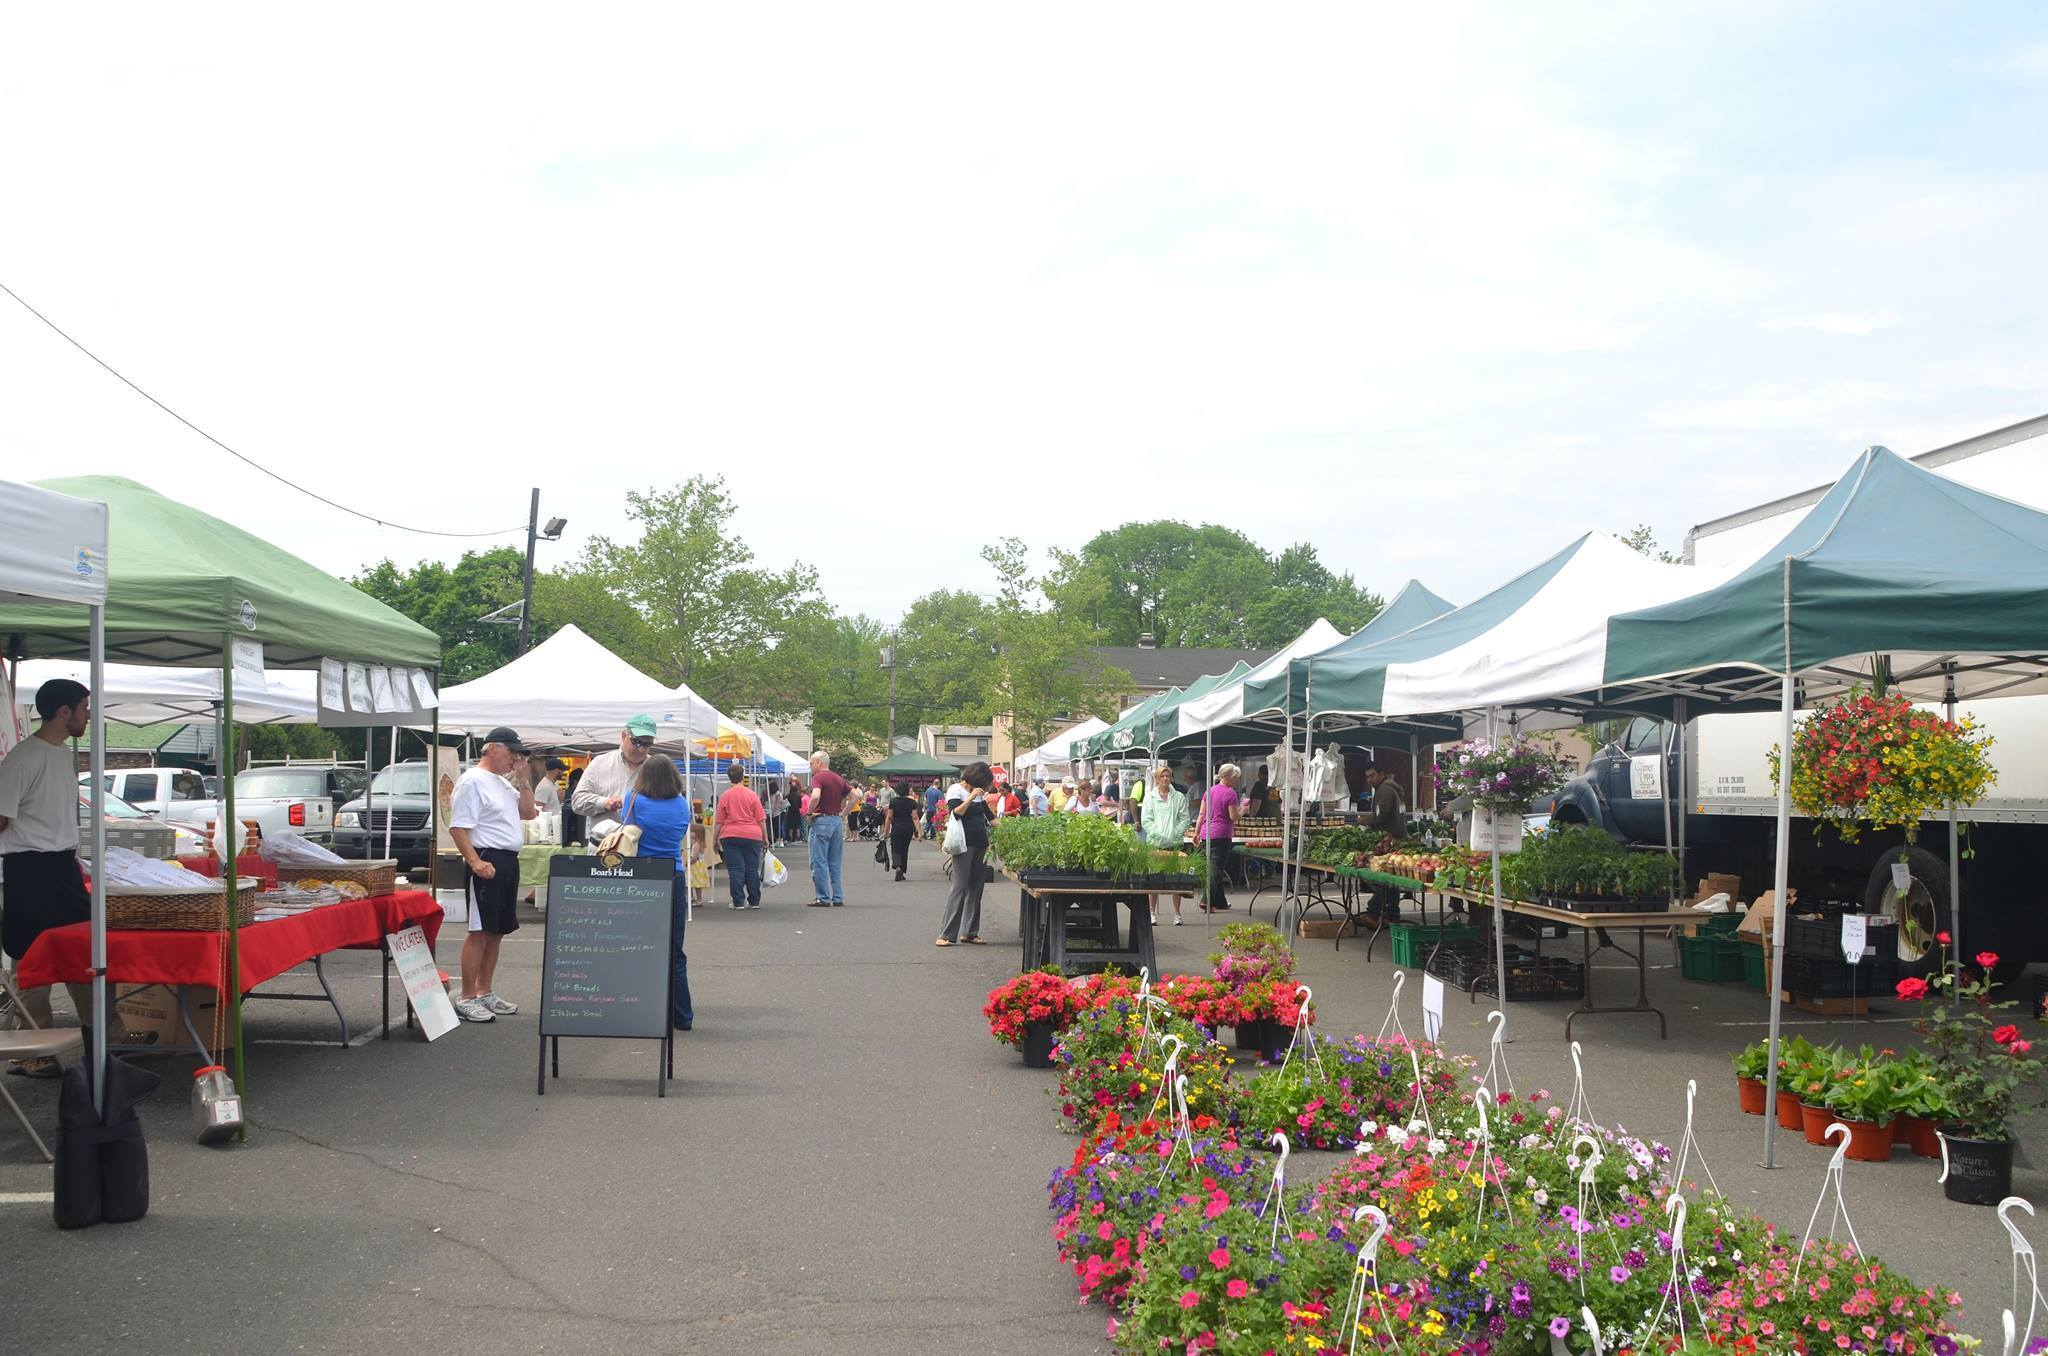 764217f781263f230928_scotch-plains-farmers-market2.jpg